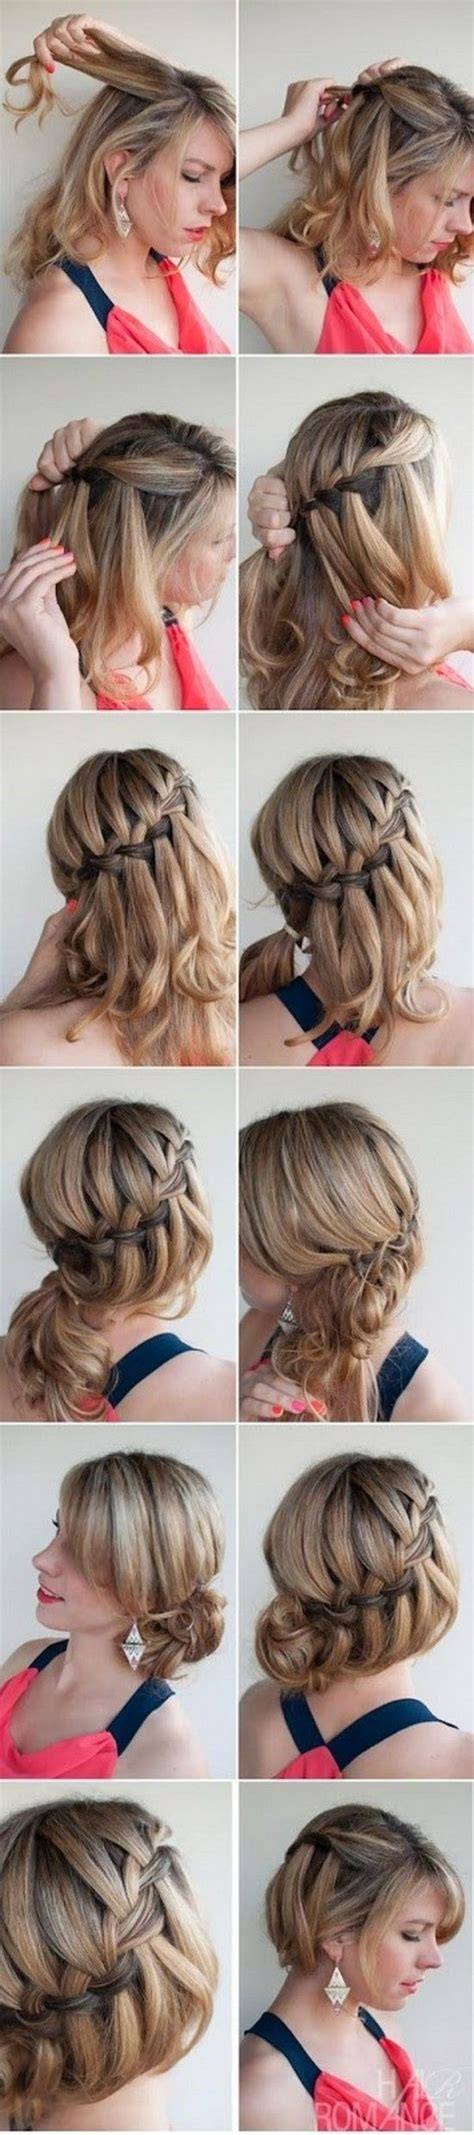 17 best images about hairstyles on pinterest braids